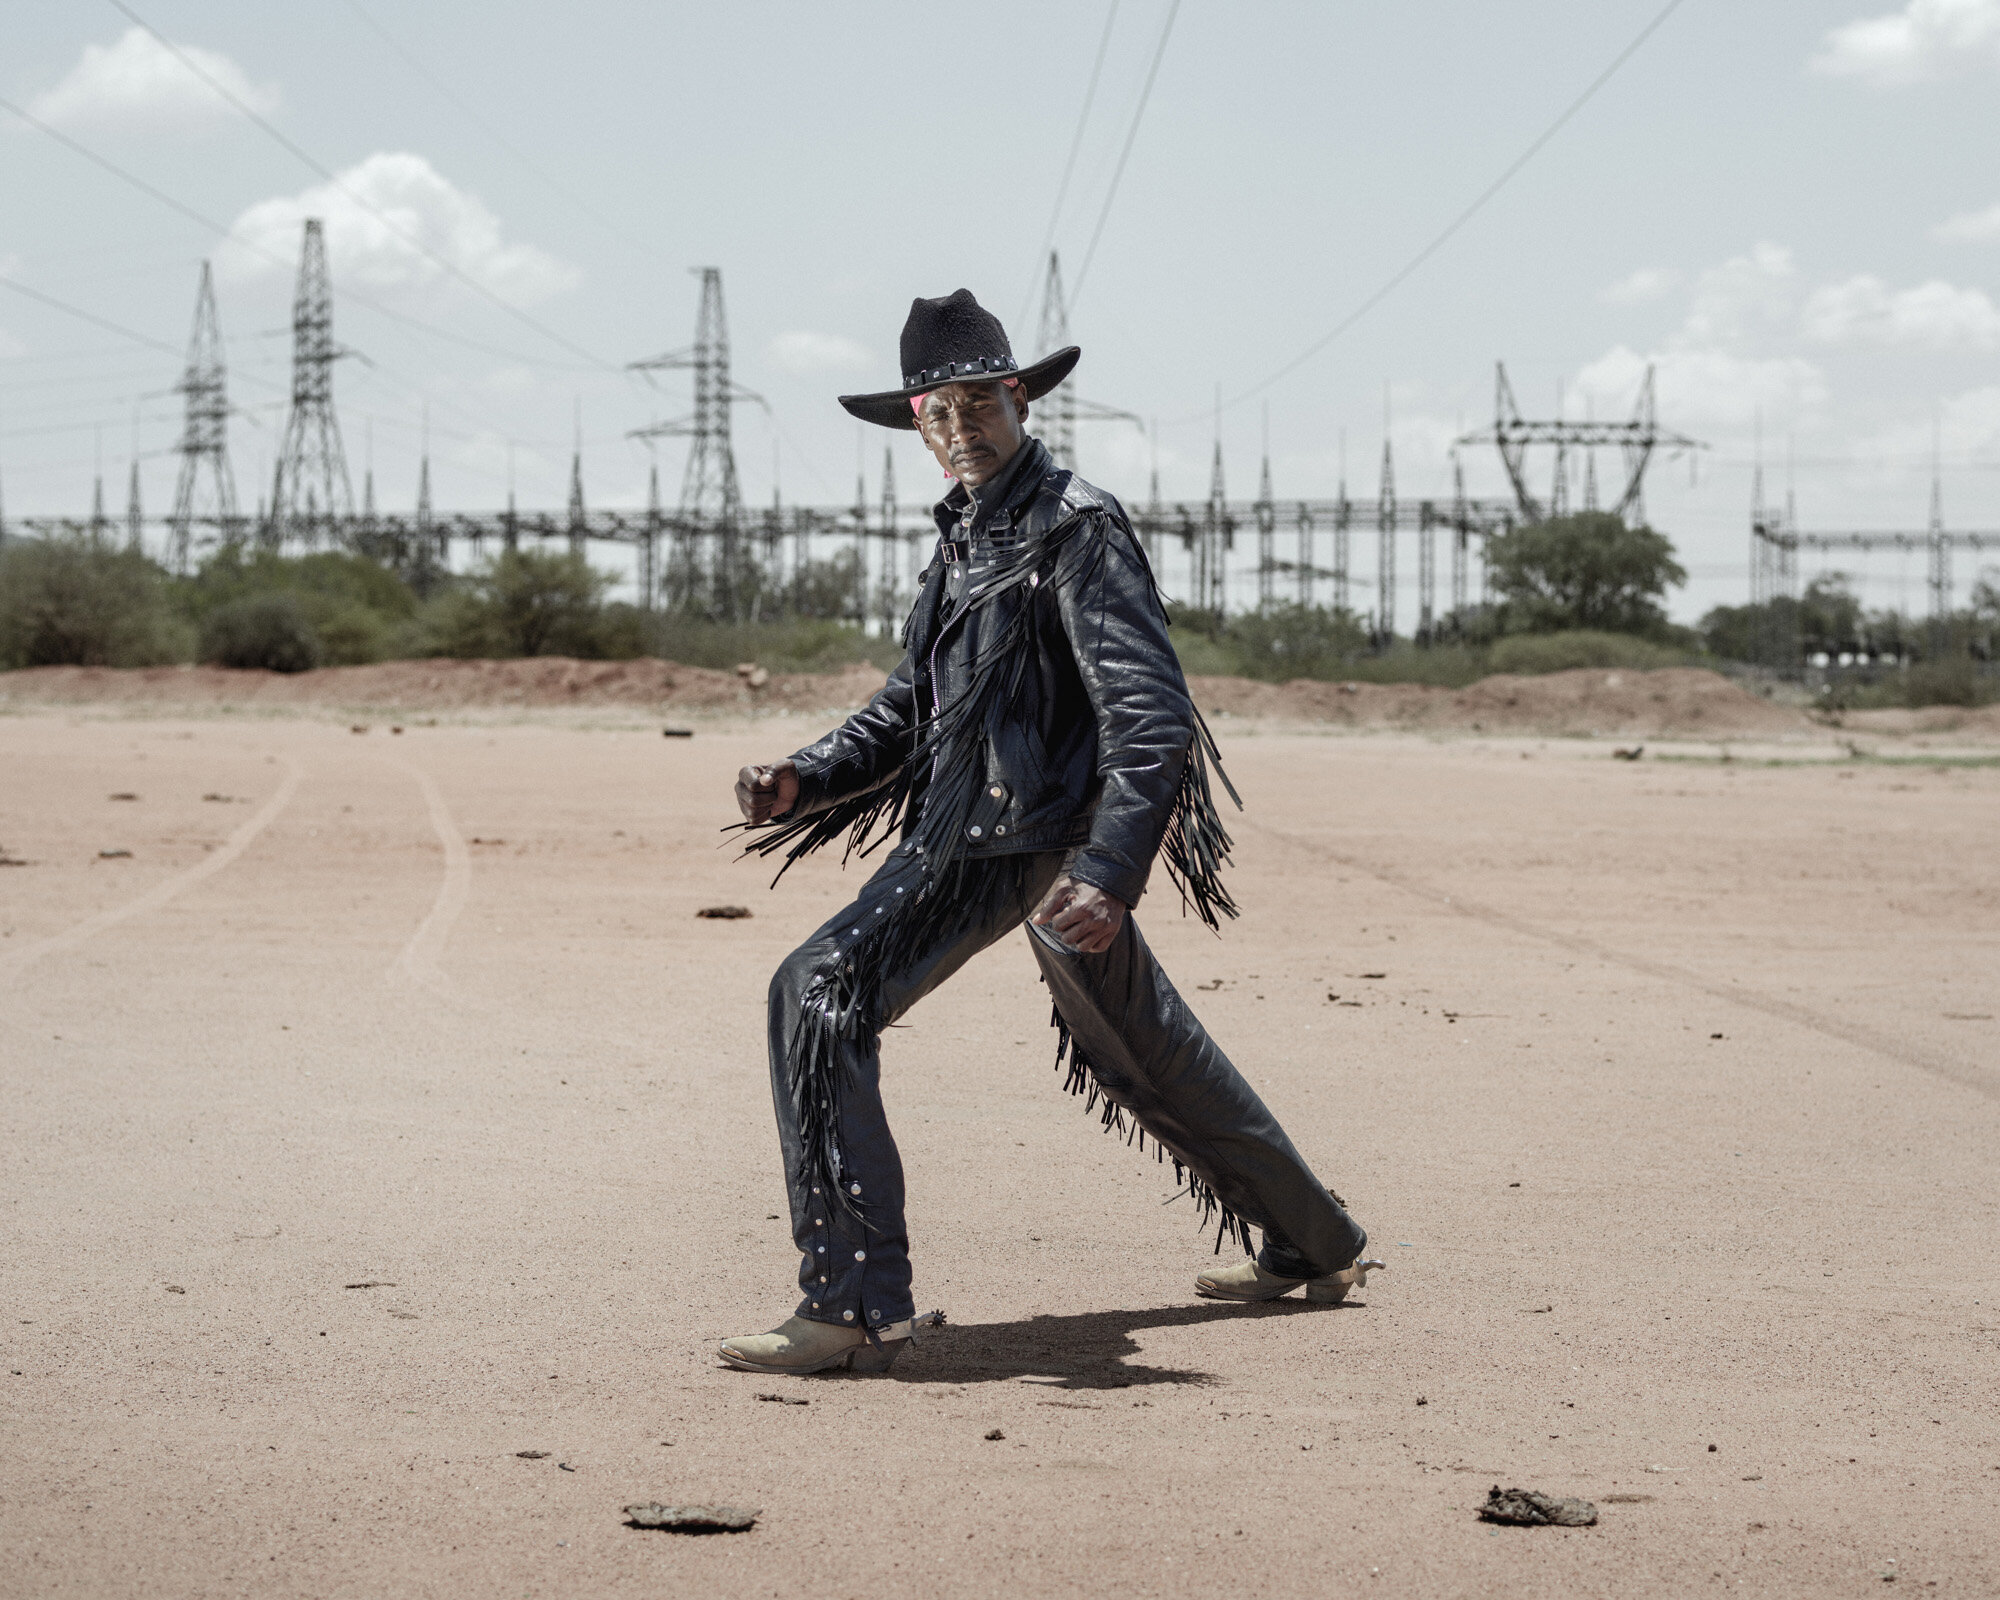 """Africa, Botswana, Gaborone, December 2015Photo by Pep Bonet / NOORPortrait of 40 years old """"Diplo""""I am a farmer, I started listening to metal music in 1999, my sister was married to a white man from England who heavily influenced me to listen to metal, by then I was just listening to that music not knowing it was called metal, up to until I learnt about metal and started buying metal attire for myself, I listened to bands like Led Zeppelin and Deep Purple."""